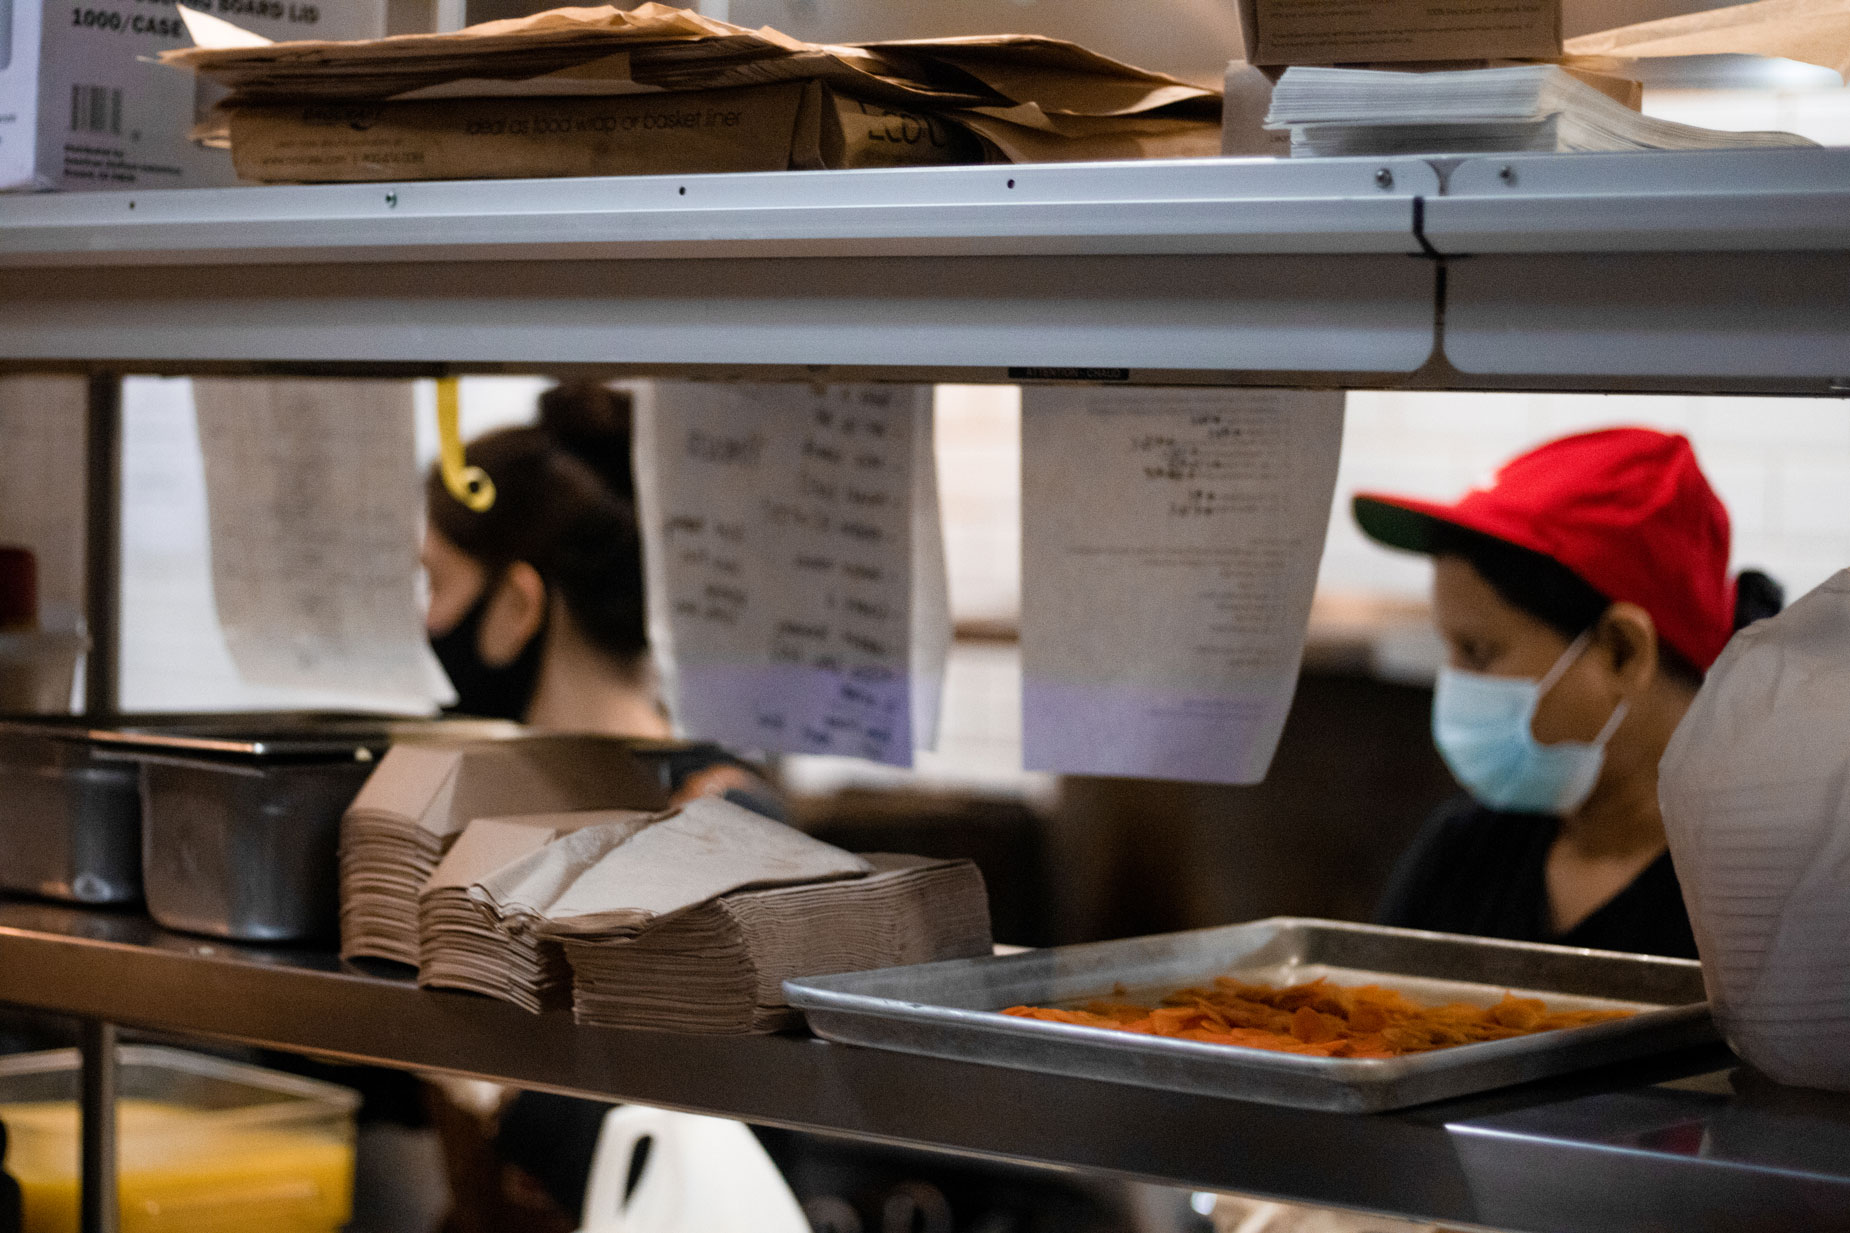 Kitchen order tickets strewn about for workers to fulfill.